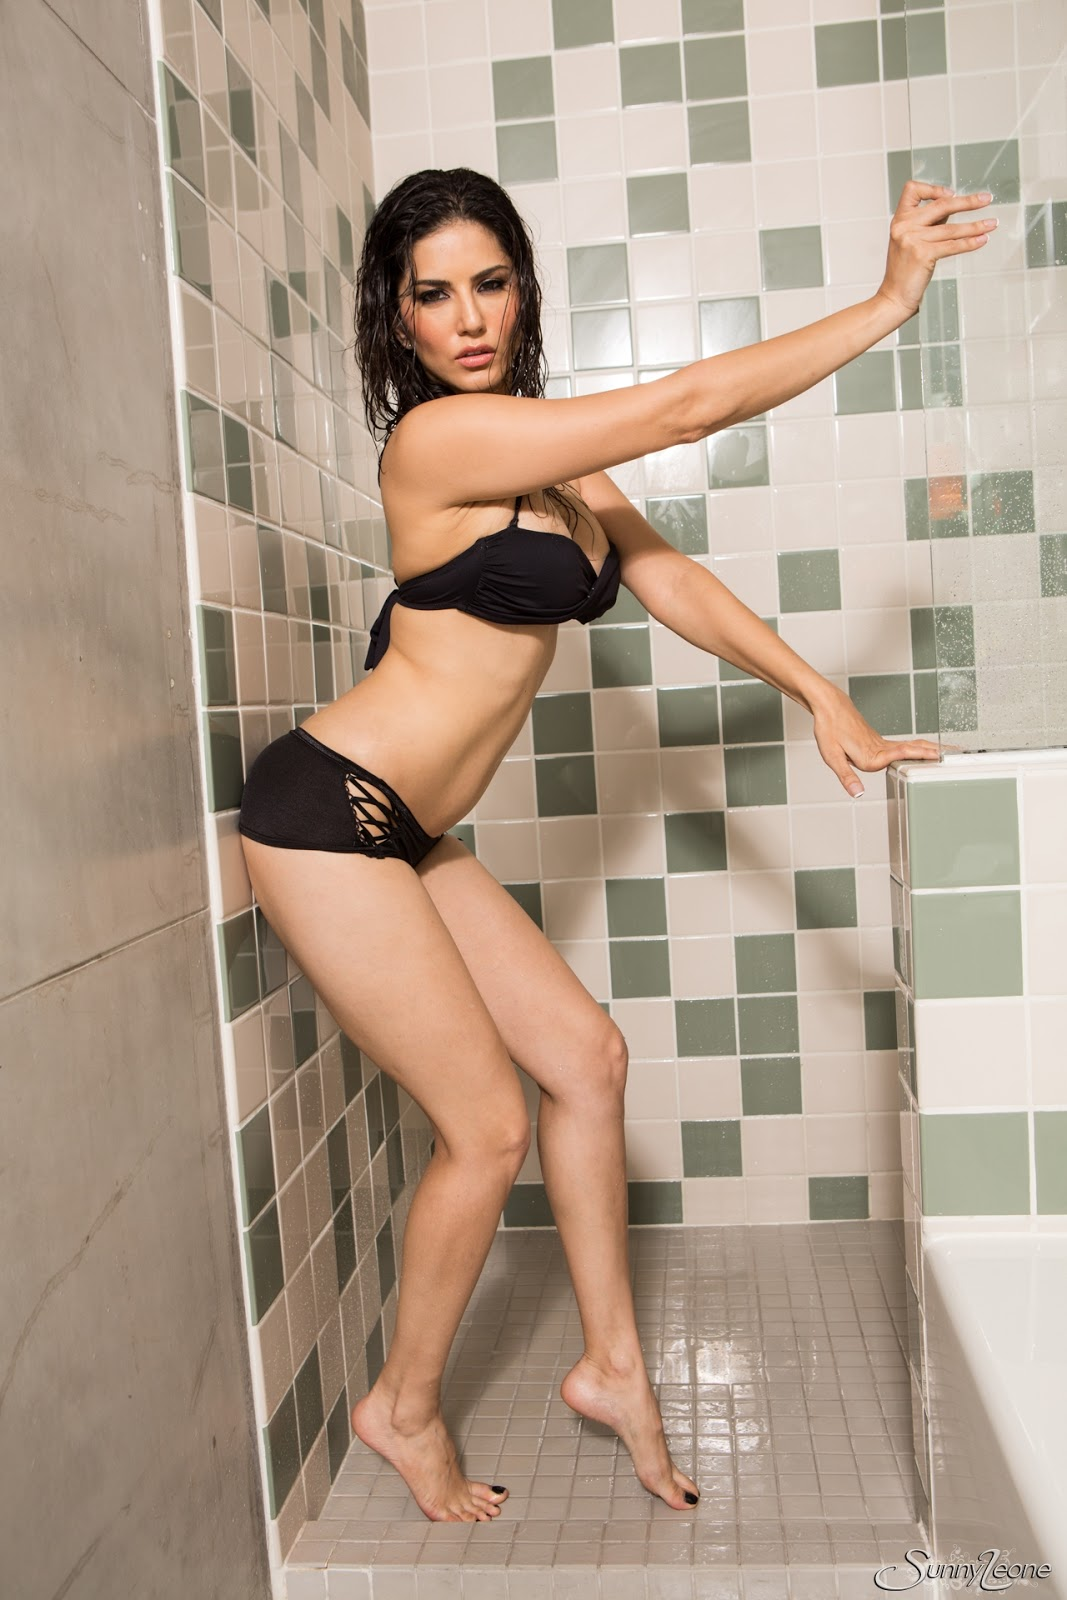 Sunny Leone Is Taking A Hot Shower While In Her Black Wet -4875